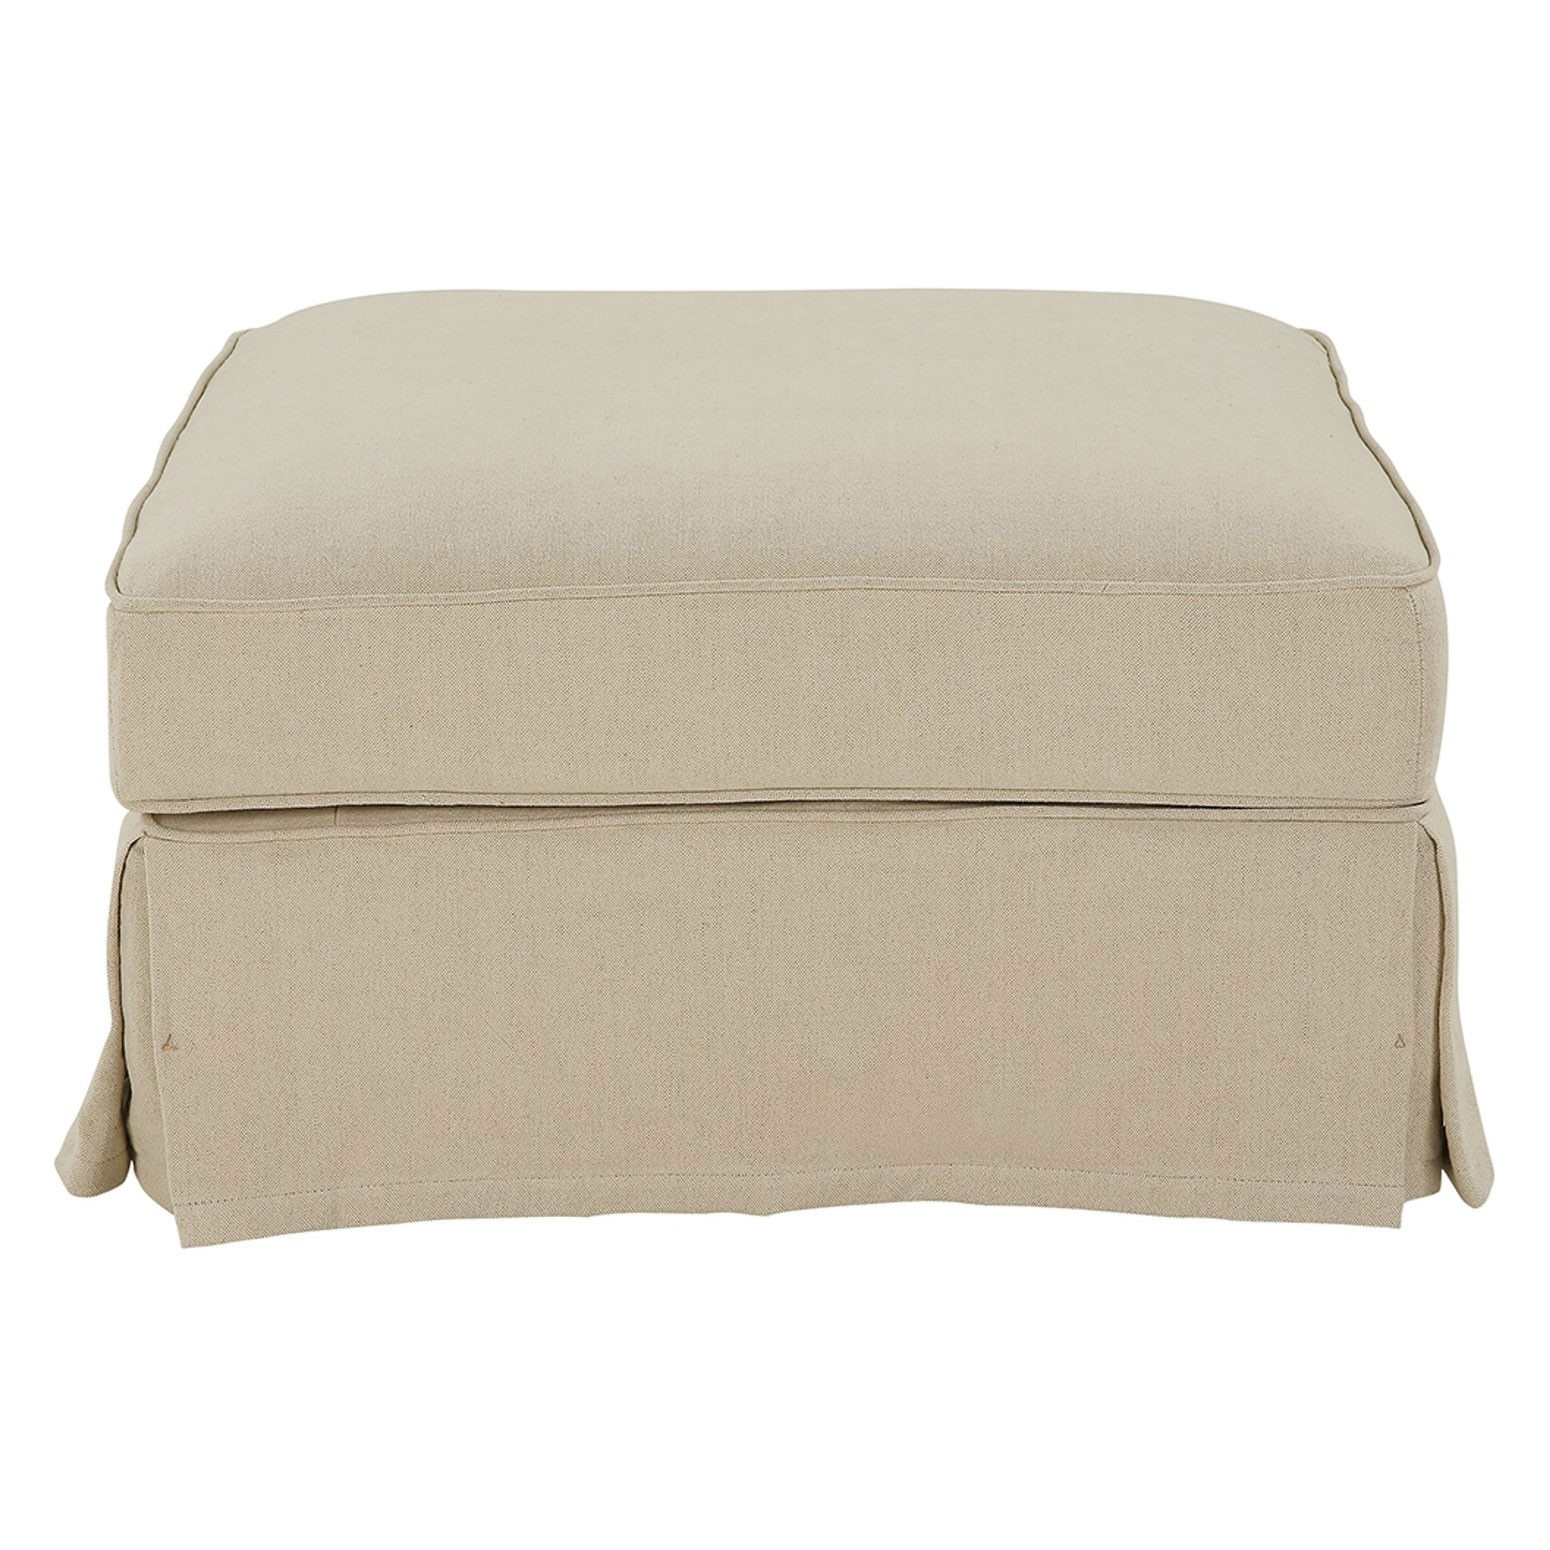 Noosa Fabric Ottoman Slipcover (Cover Only), Beige